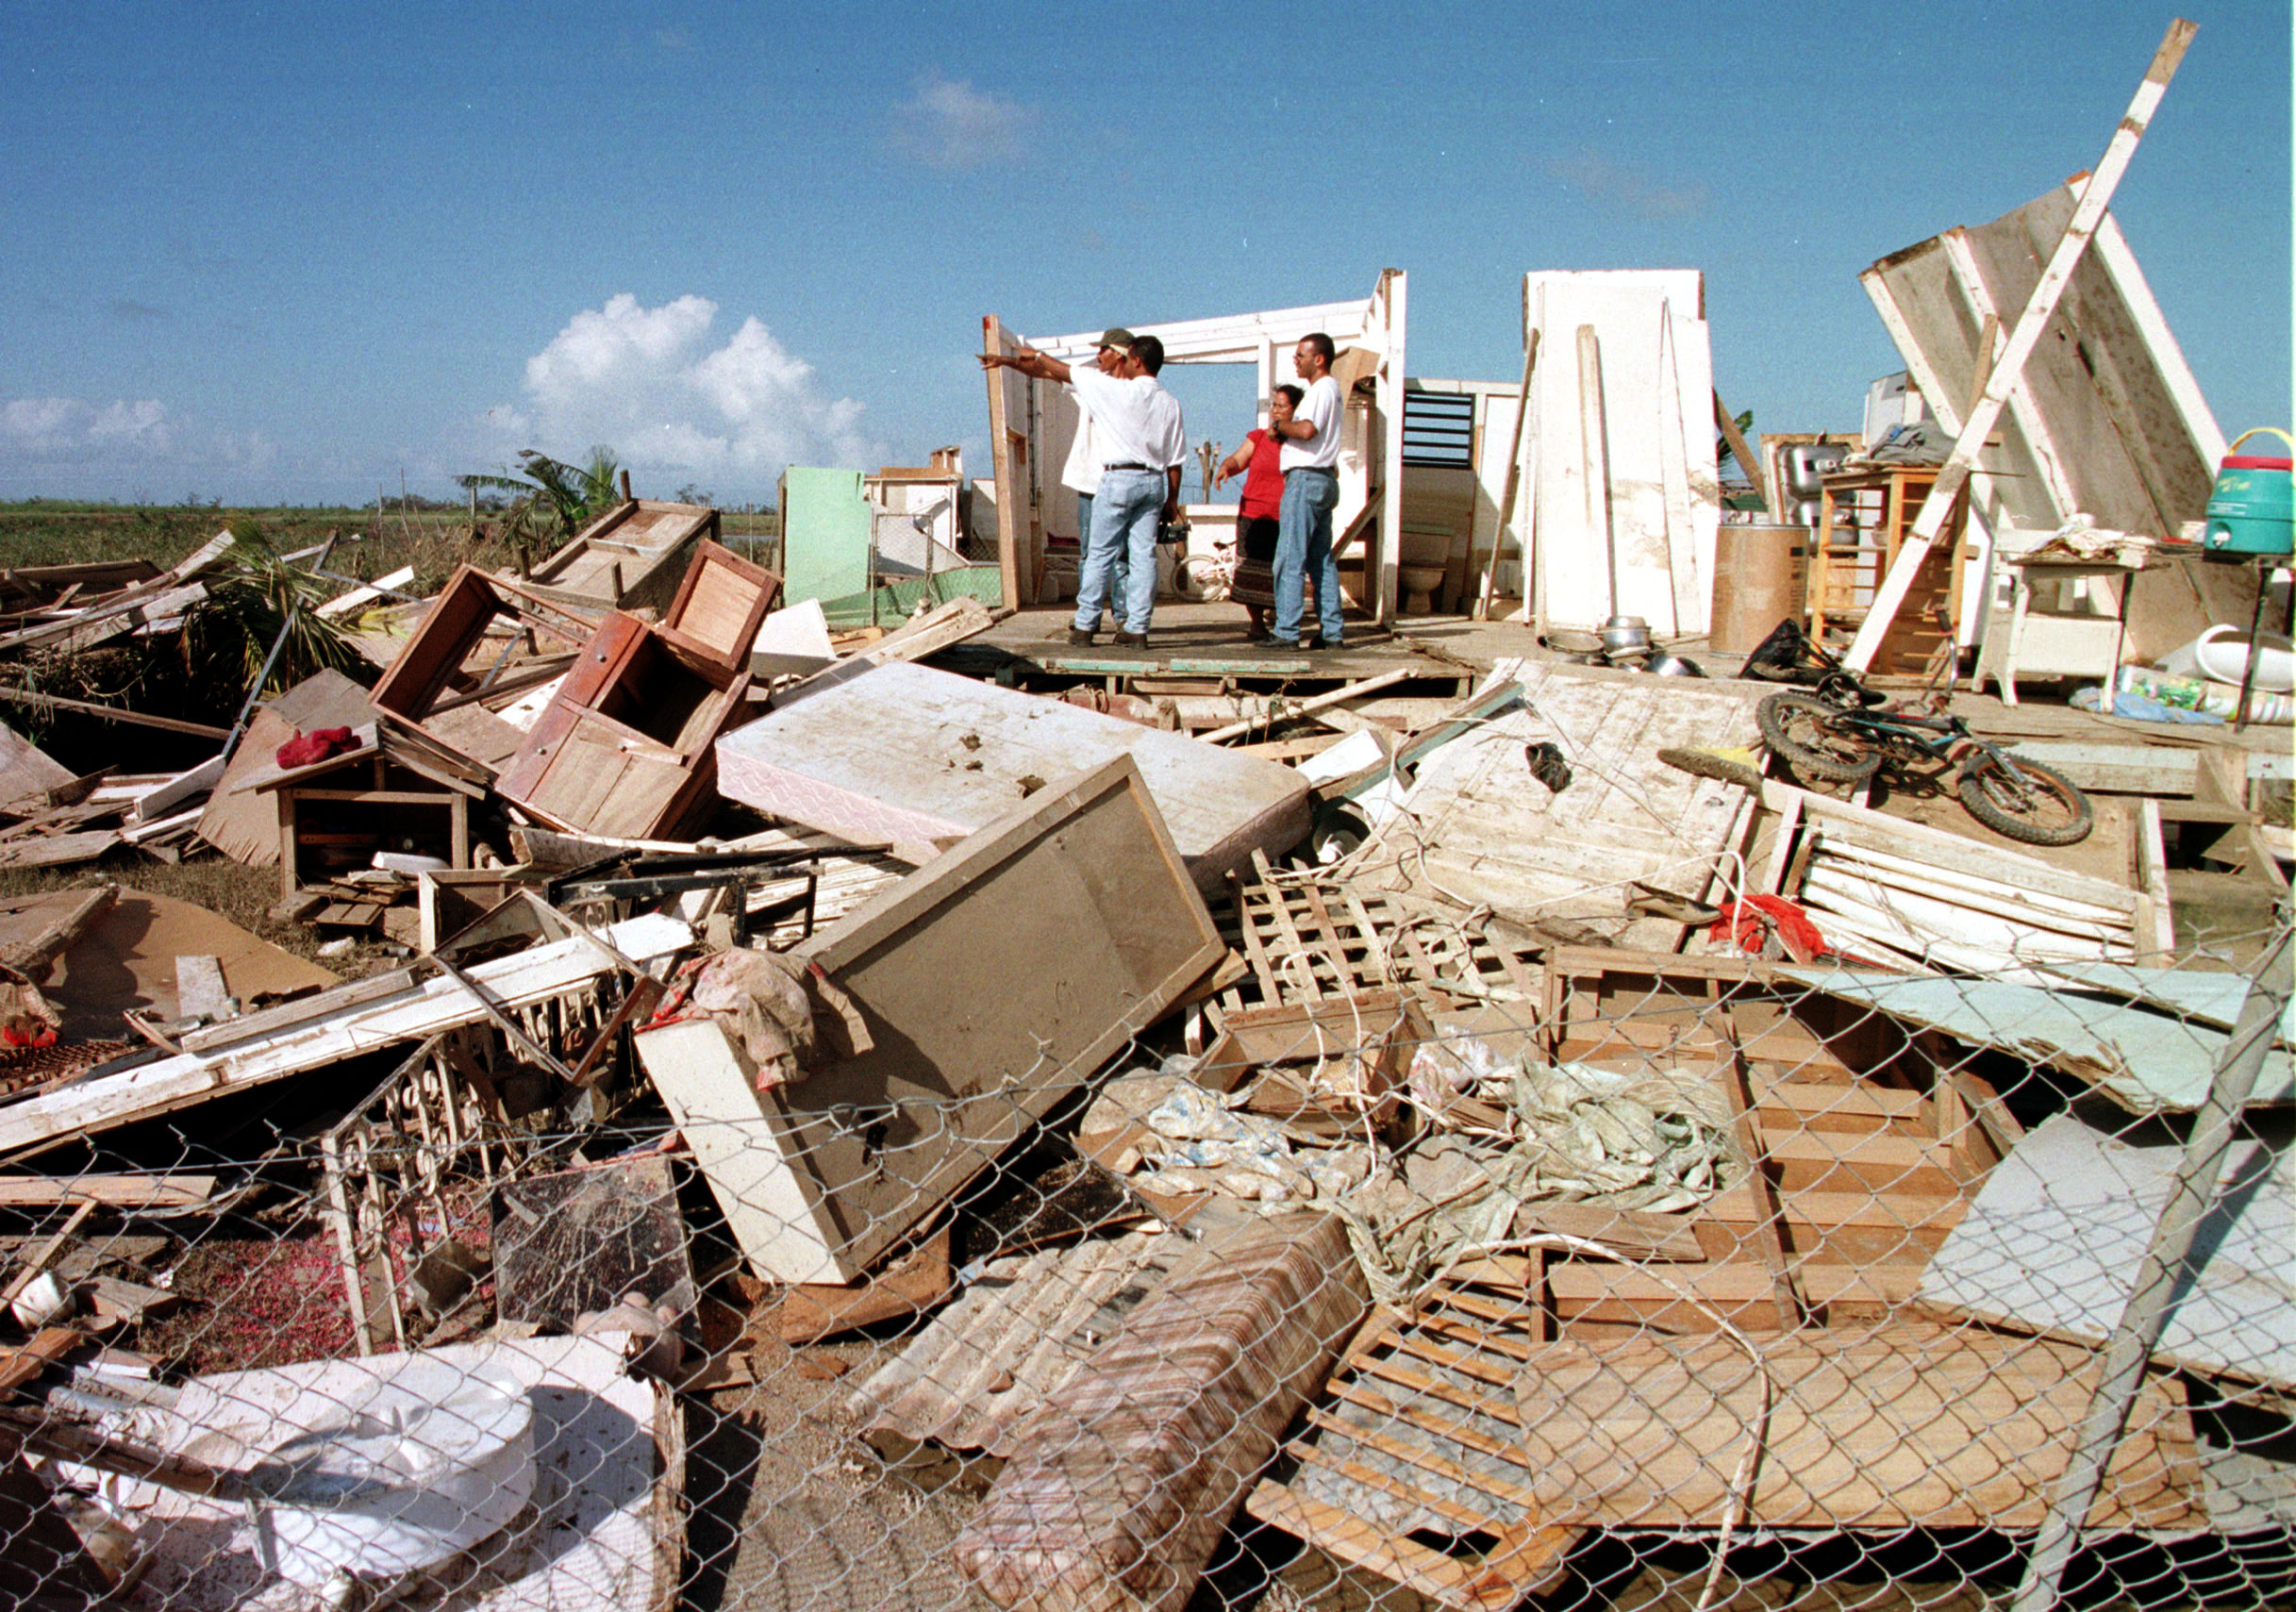 Storm of Shame: How Hurricane Relief Sorts People into Deserving and Undeserving Poor